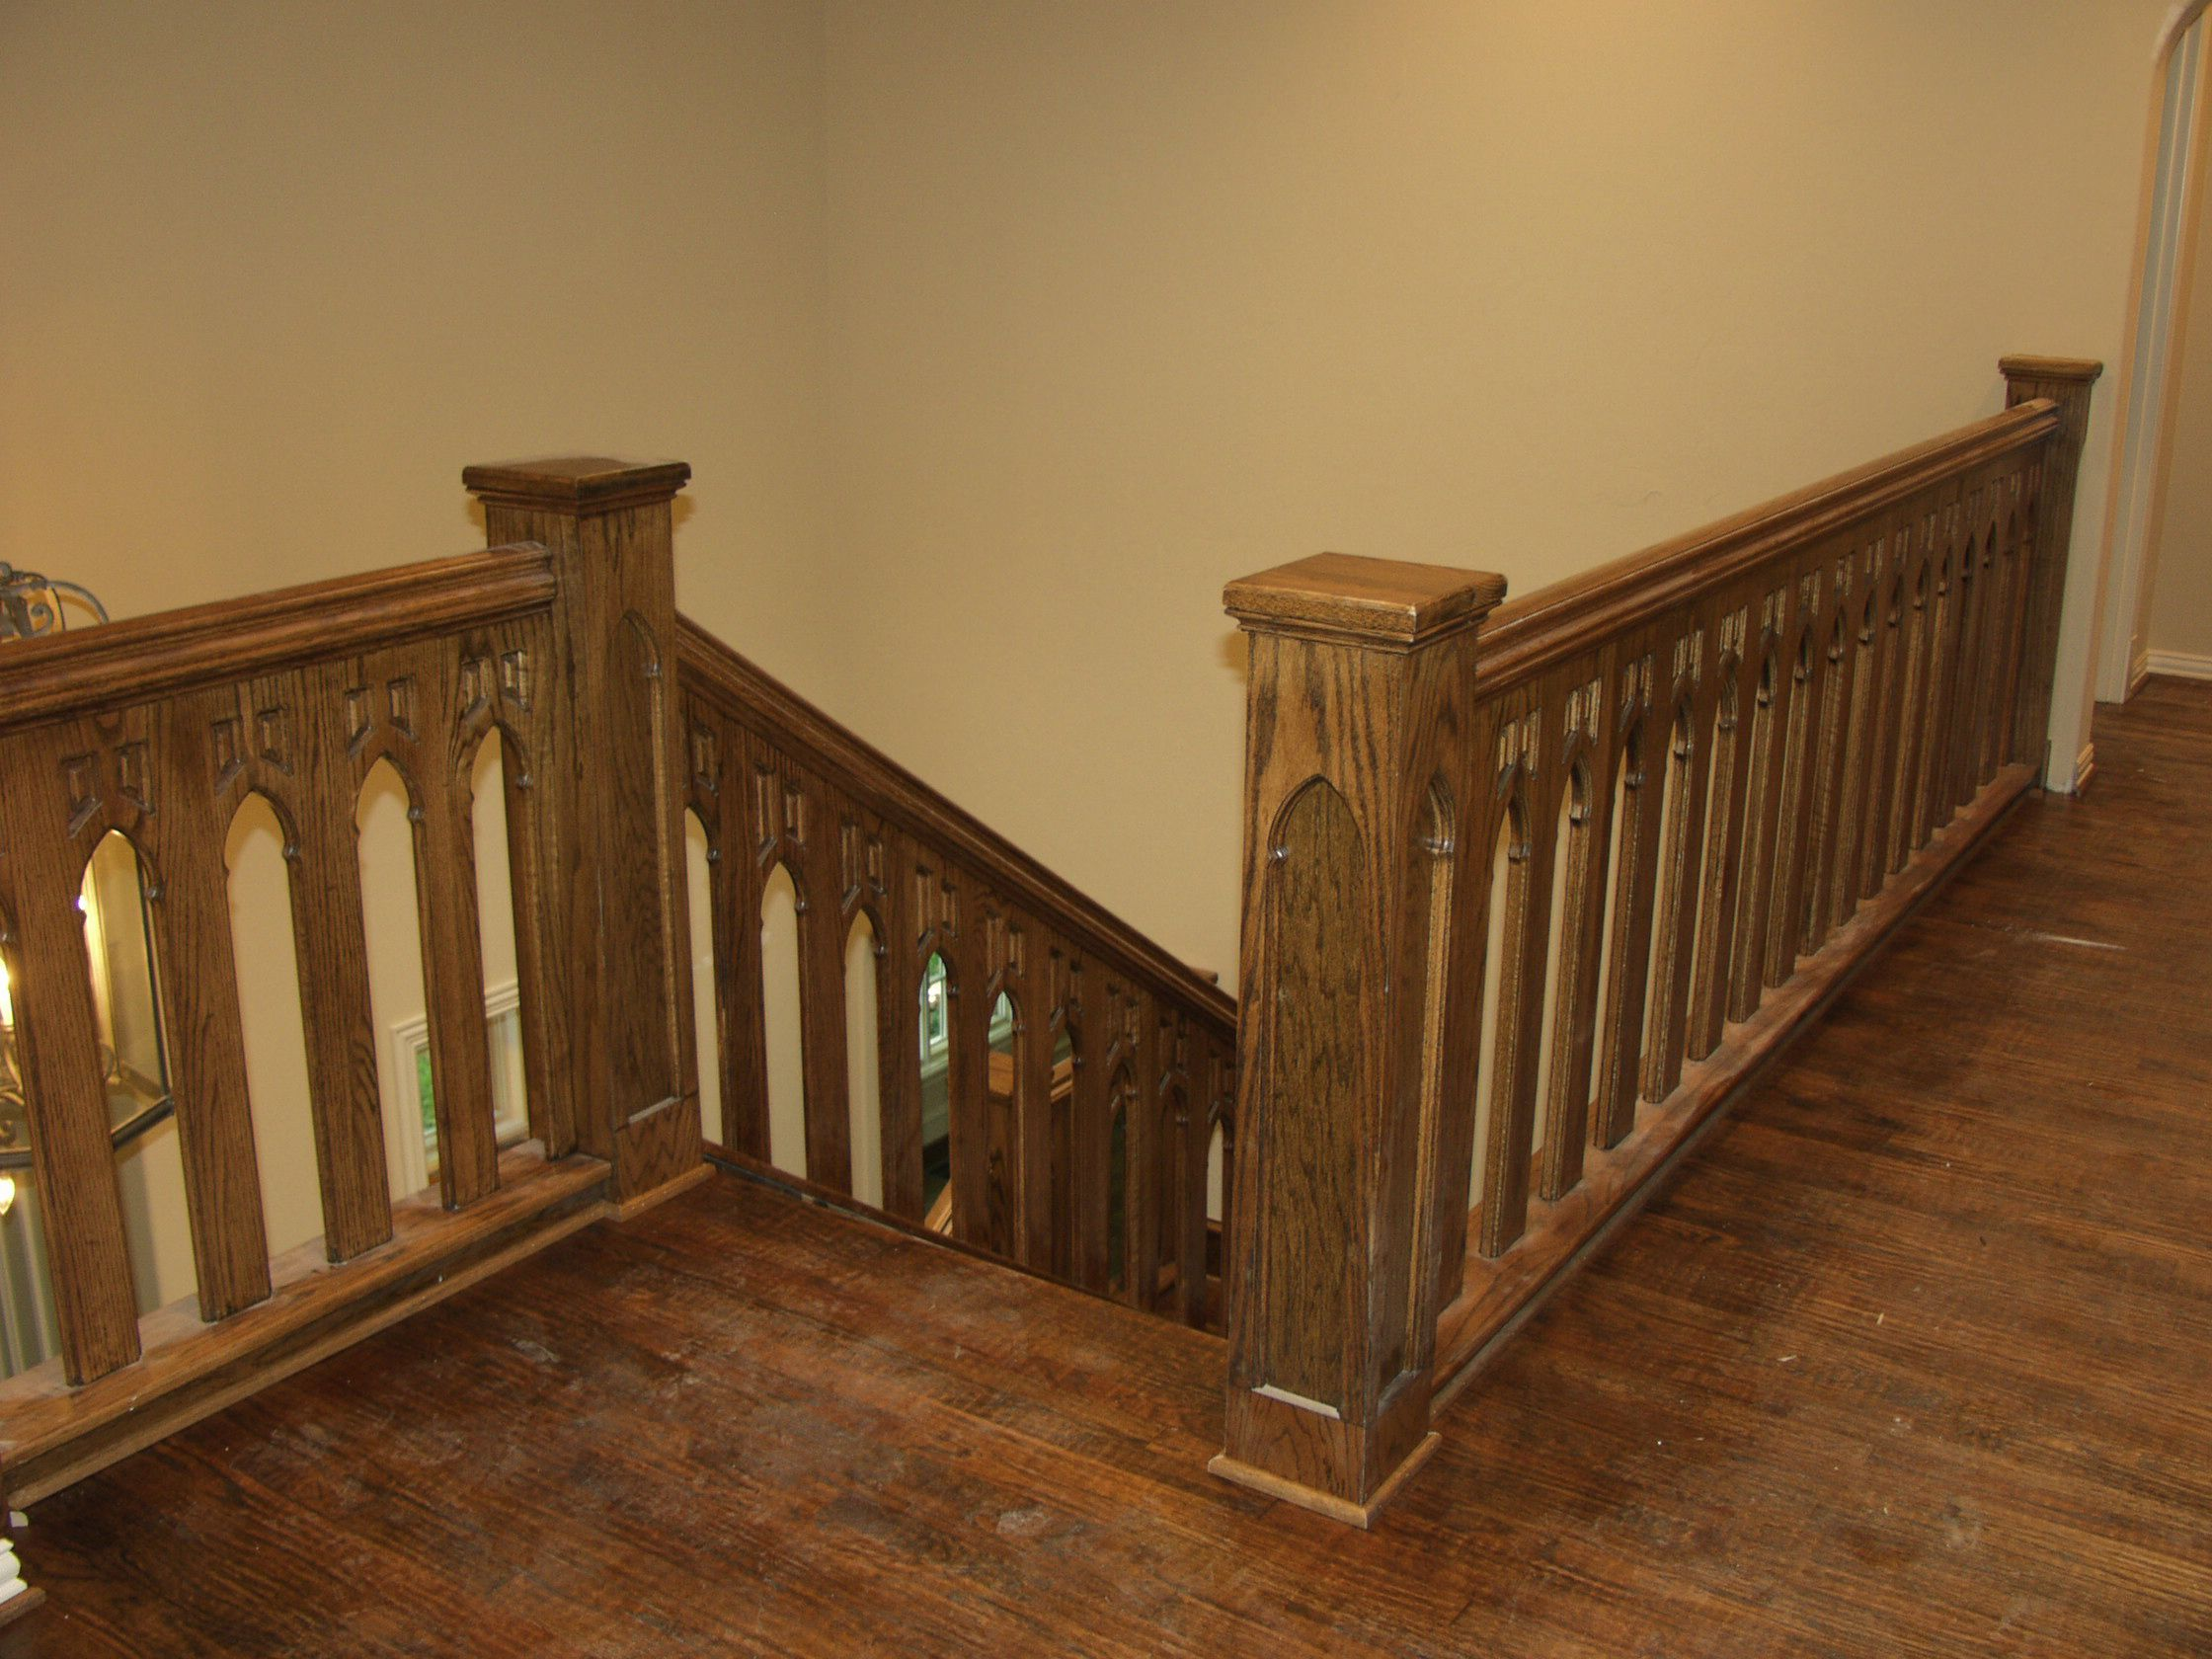 Custom Stairs Include Fabricated Iron Railings, Detailed Ornamental Wood Work,